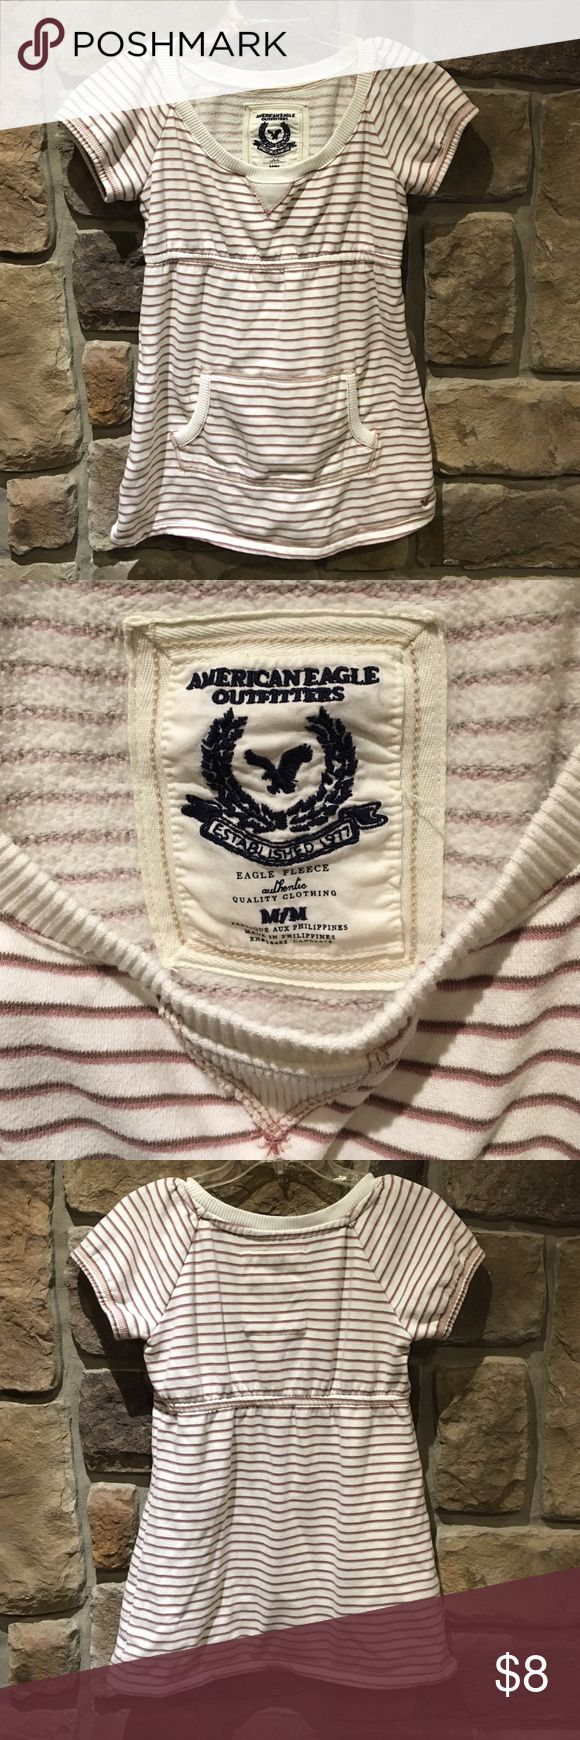 American Eagle shirt size Medium. American Eagle shirt size Medium. Material is like a thin sweatshirt. Color of stripes are mauve and brown American Eagle Outfitters Tops